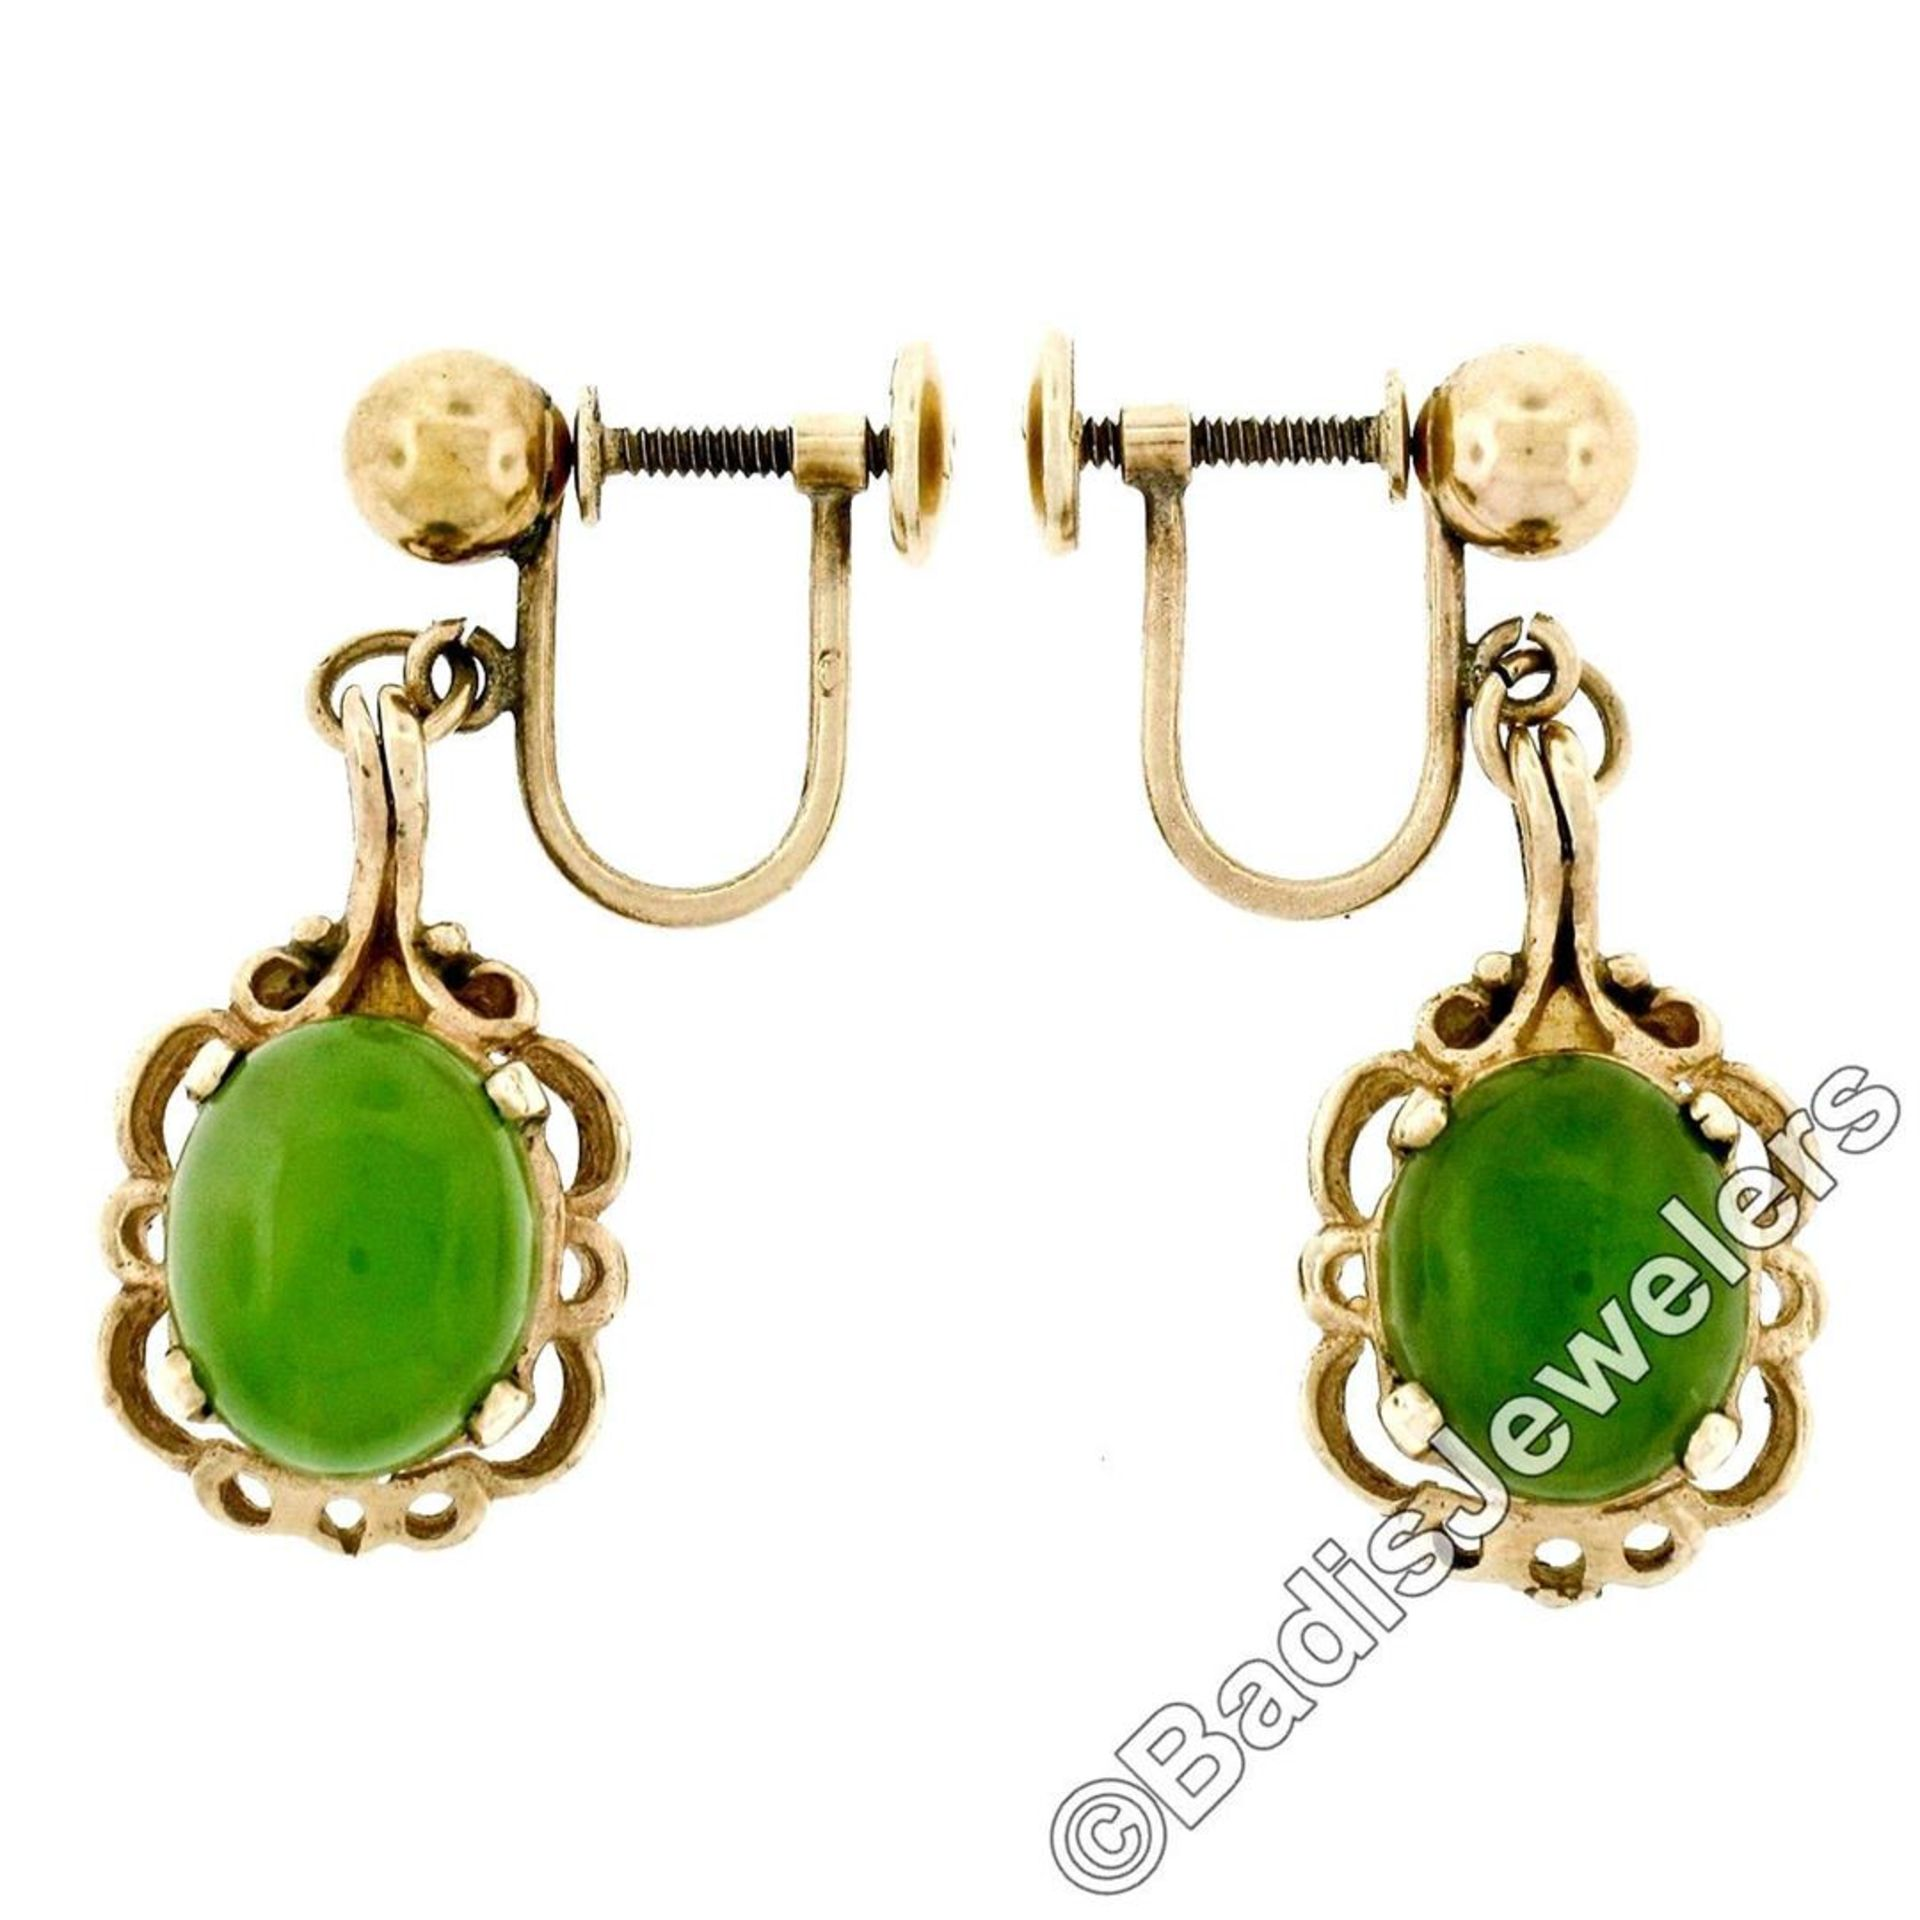 Vintage 14kt Yellow Gold Oval Green Jade Non Pierced Earrings - Image 5 of 6